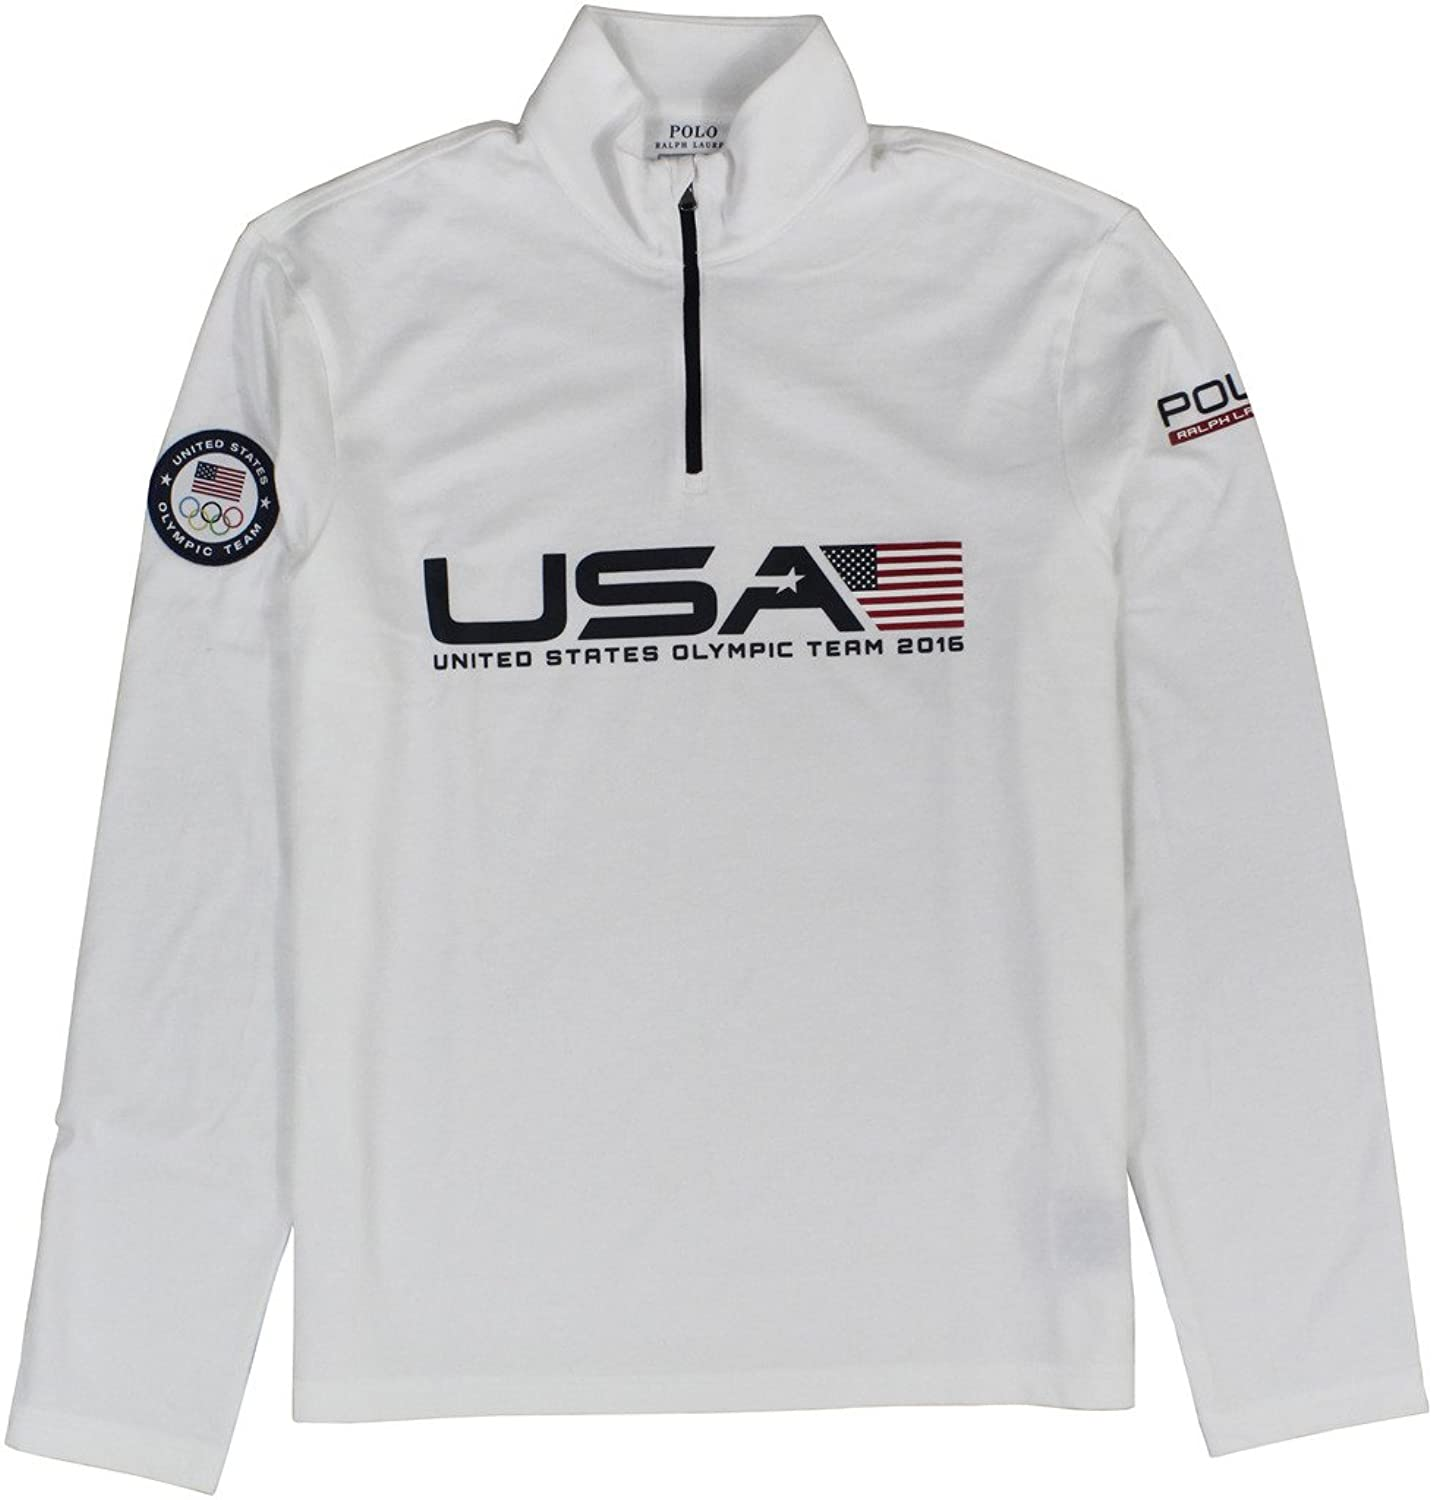 Polo Ralph Lauren Men\u0027s 2016 Olympic USA Team Jersey Pullover Sweaters at  Amazon Men\u0027s Clothing store: